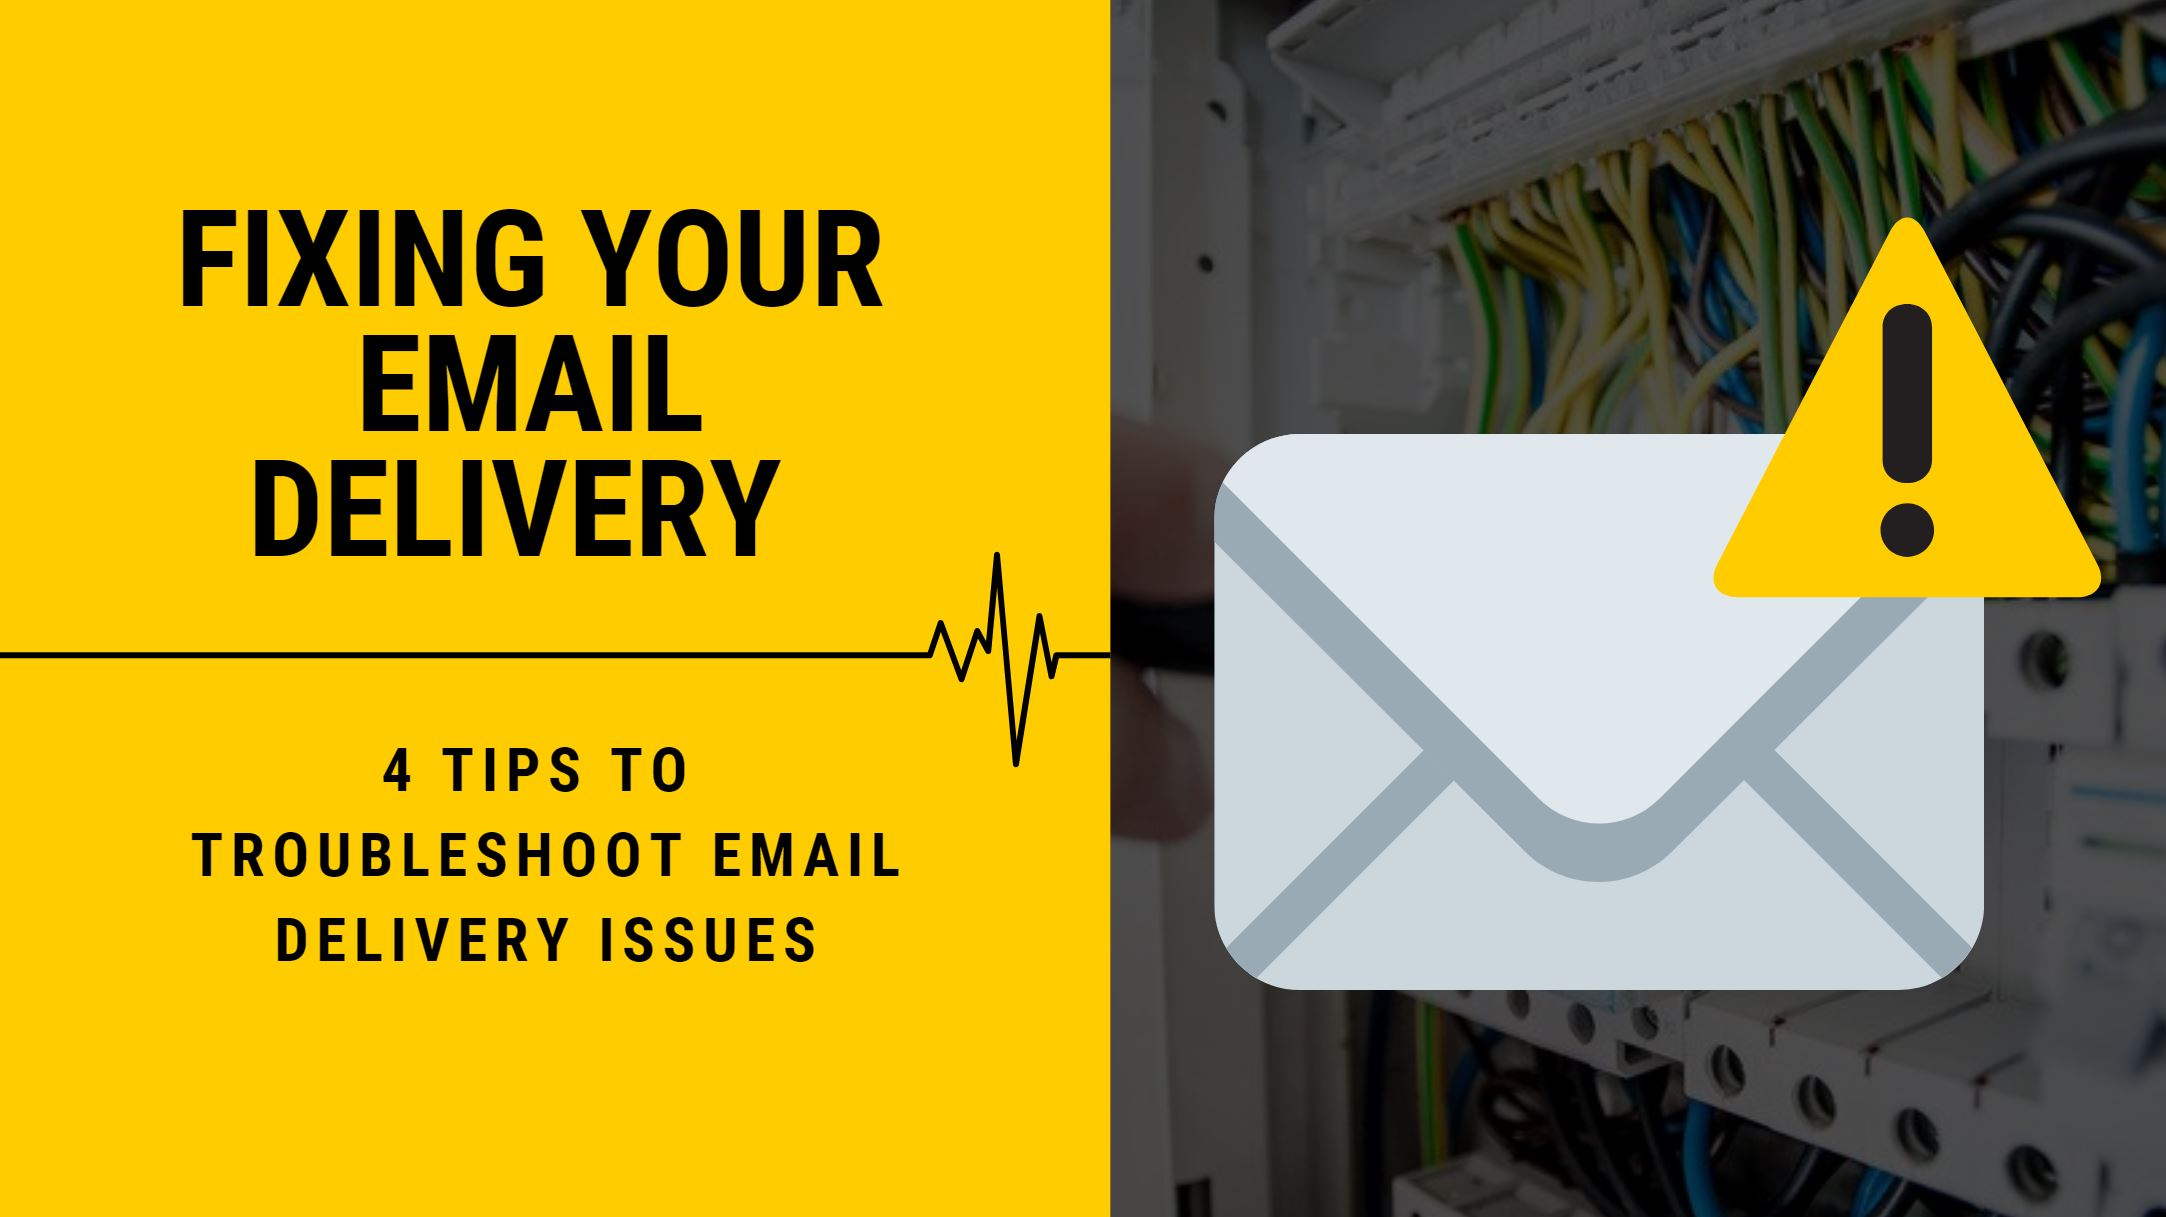 Troubleshooting Email Delivery Issues: 4 Tips To Get Back On Track, Fast